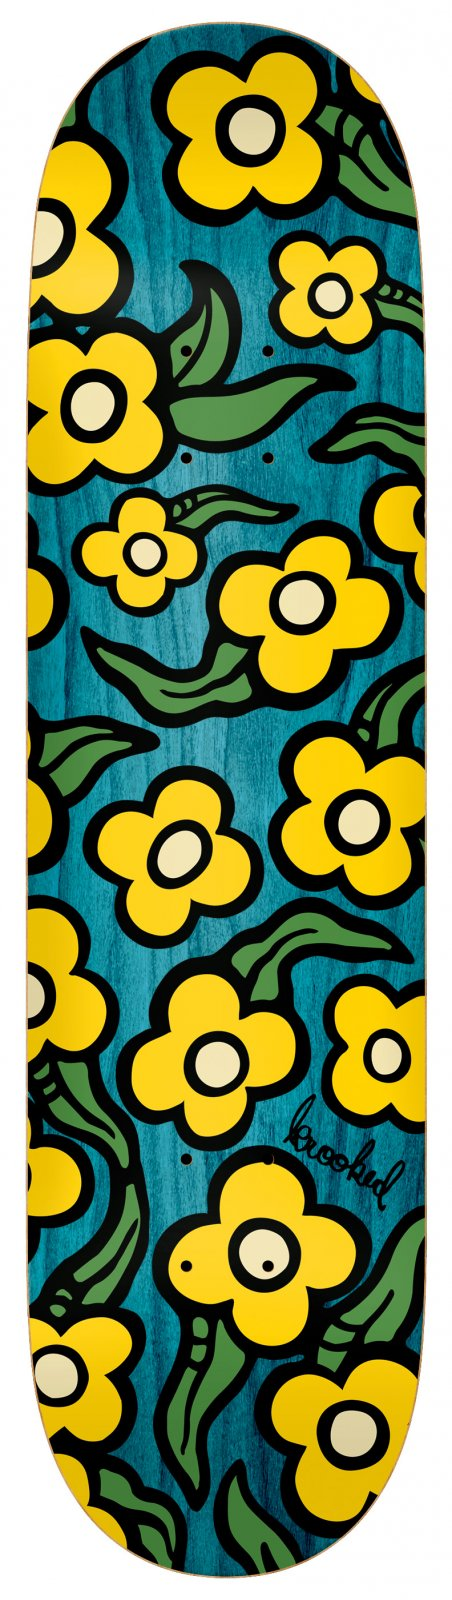 Krooked Wildstyle Flowers Assorted Stains 7.75 x 31.25